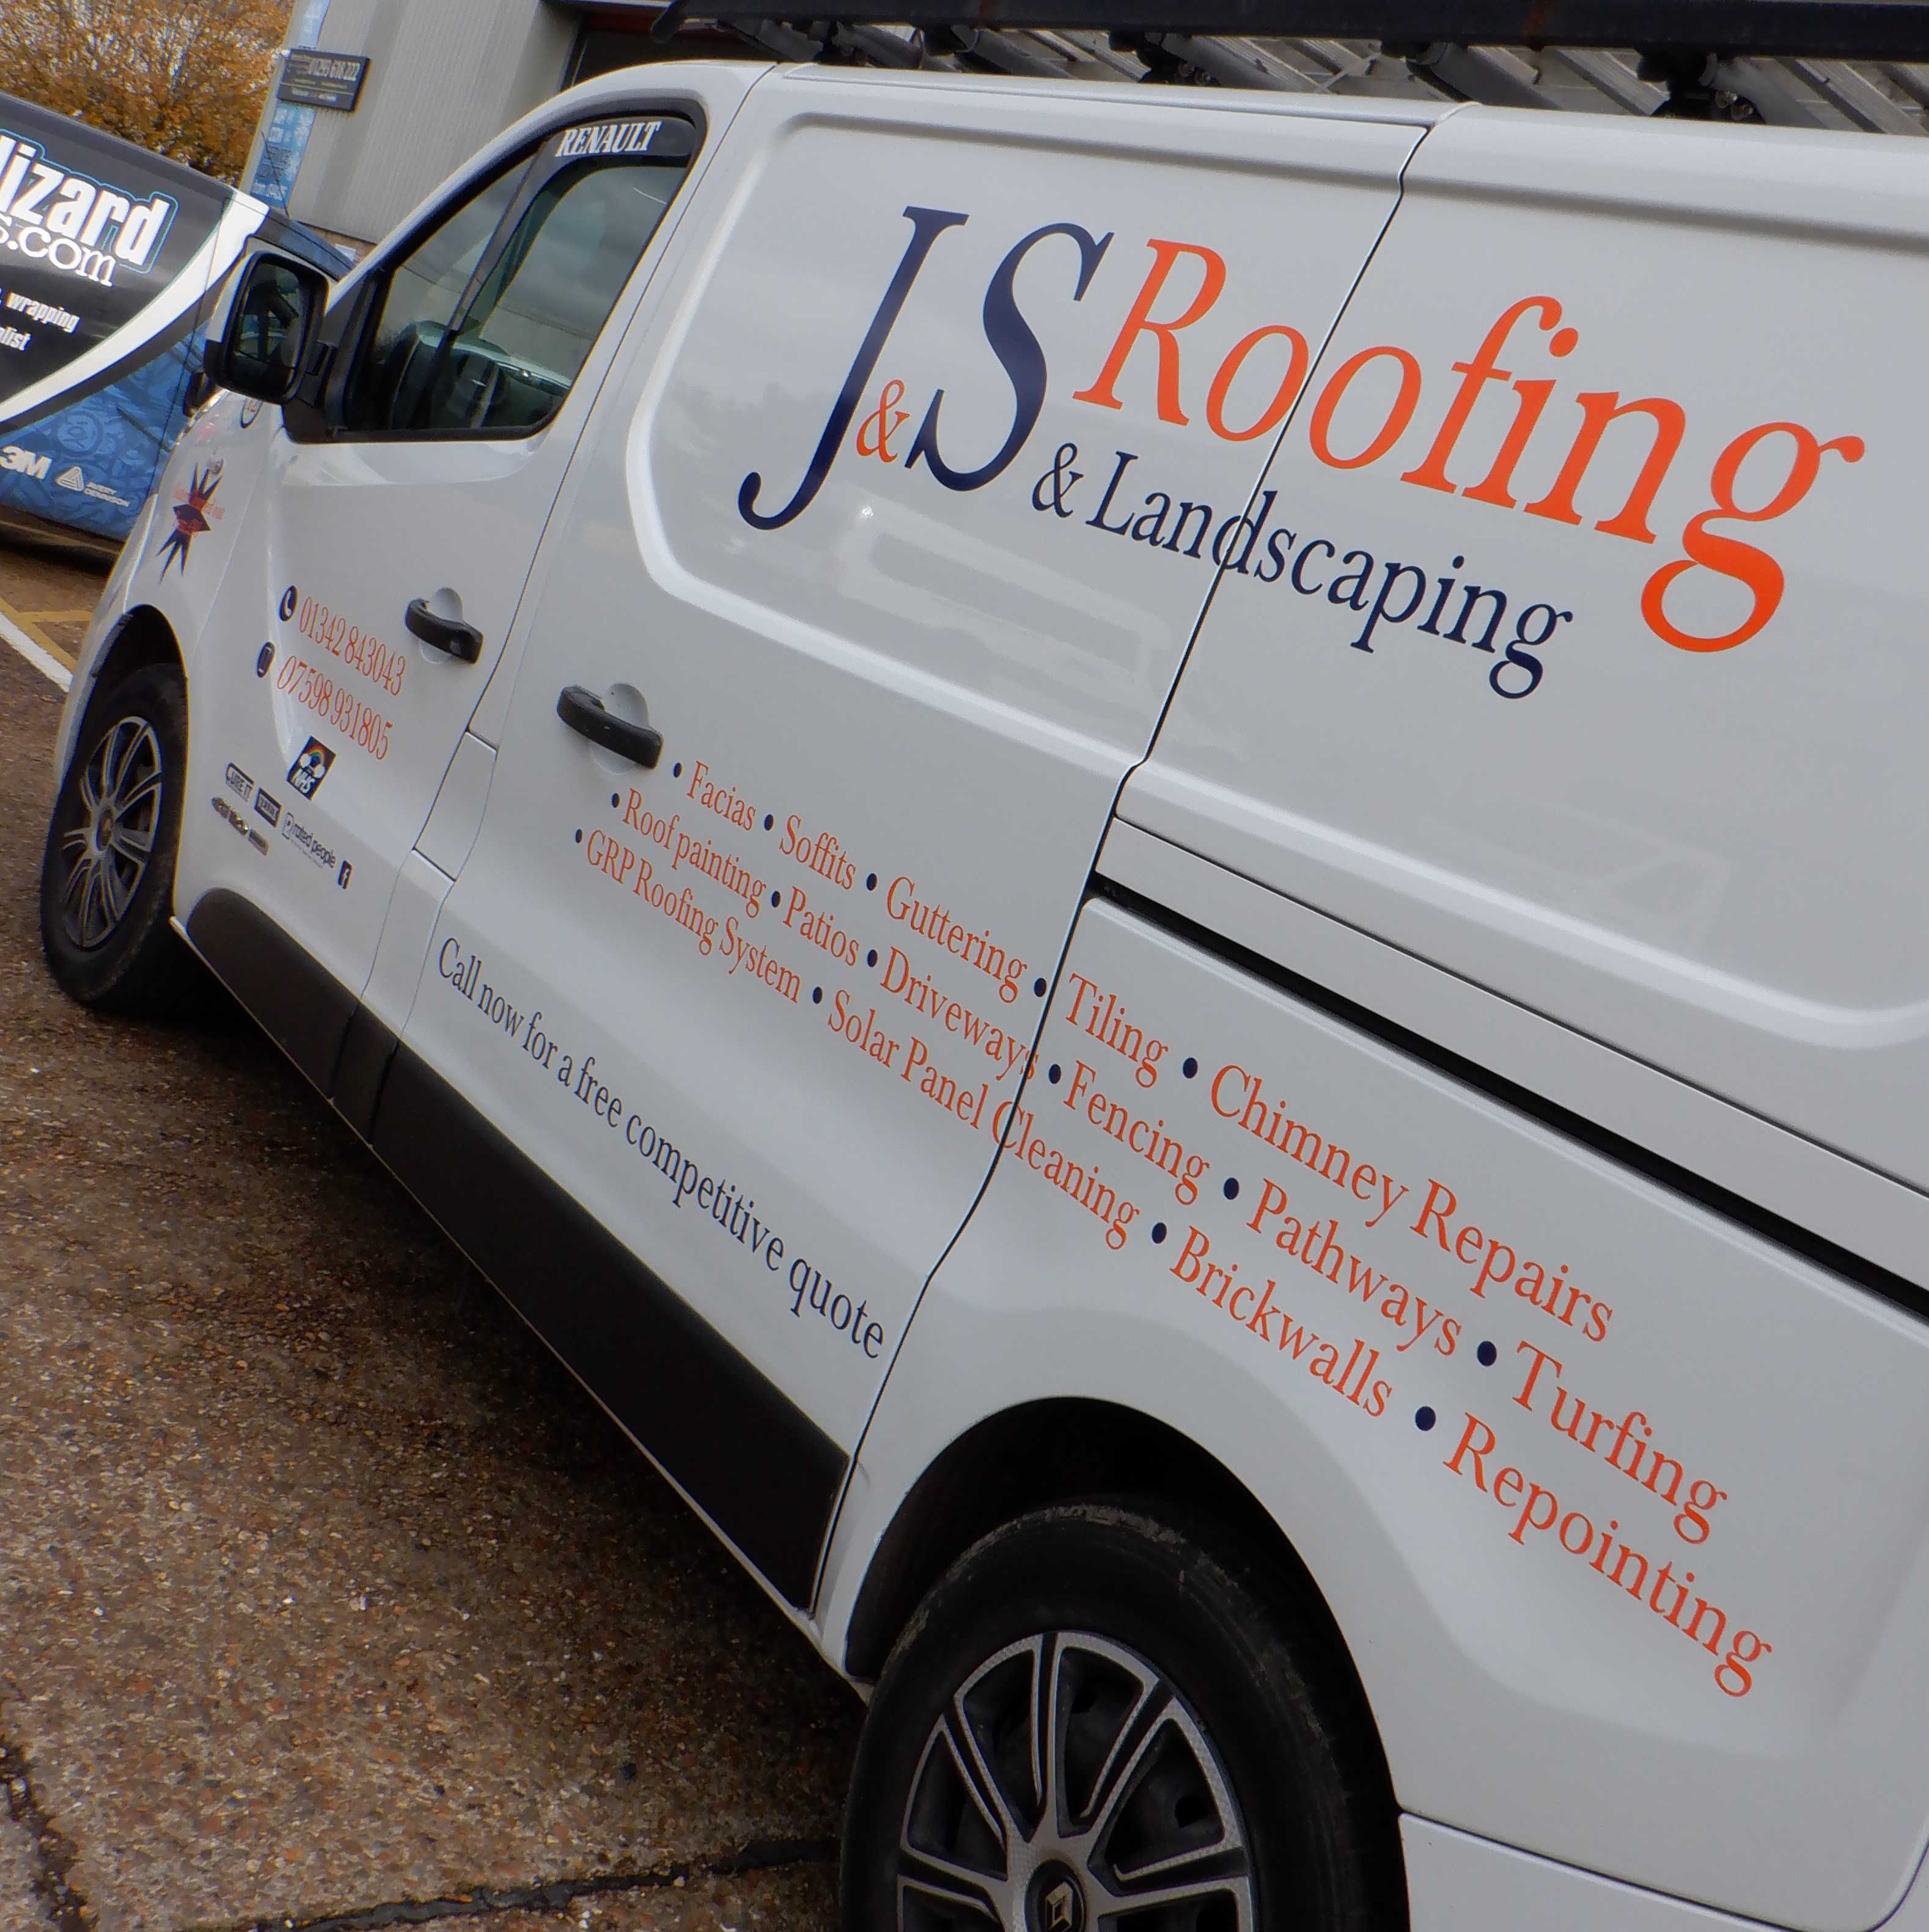 J&S ROOFING & LANDSCAPING